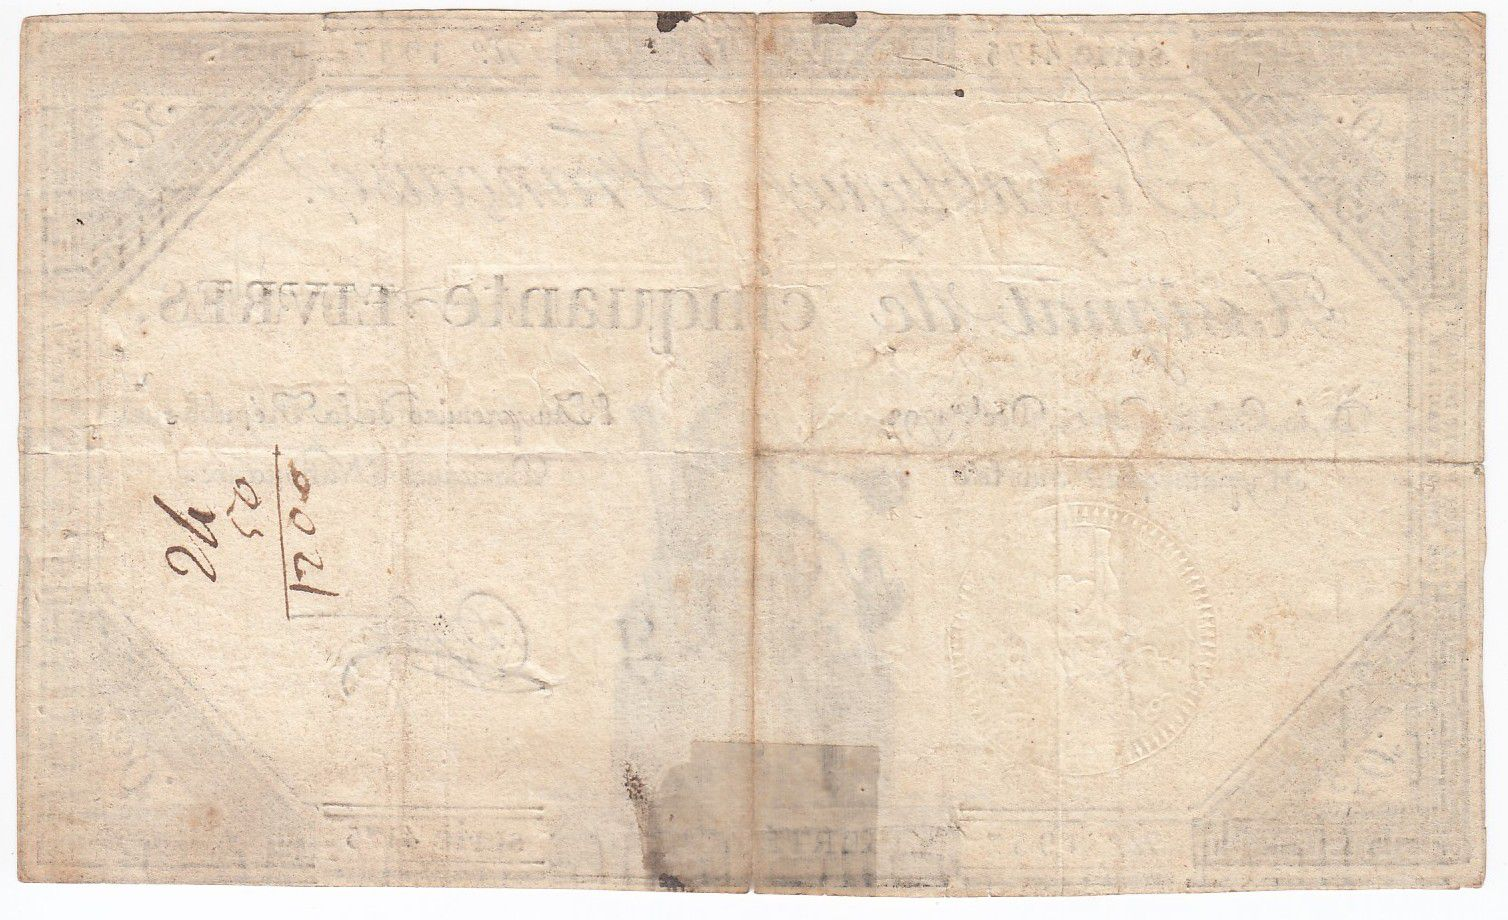 France 50 Livres France seated - 14-12-1792 - Sign. Dufour - VF